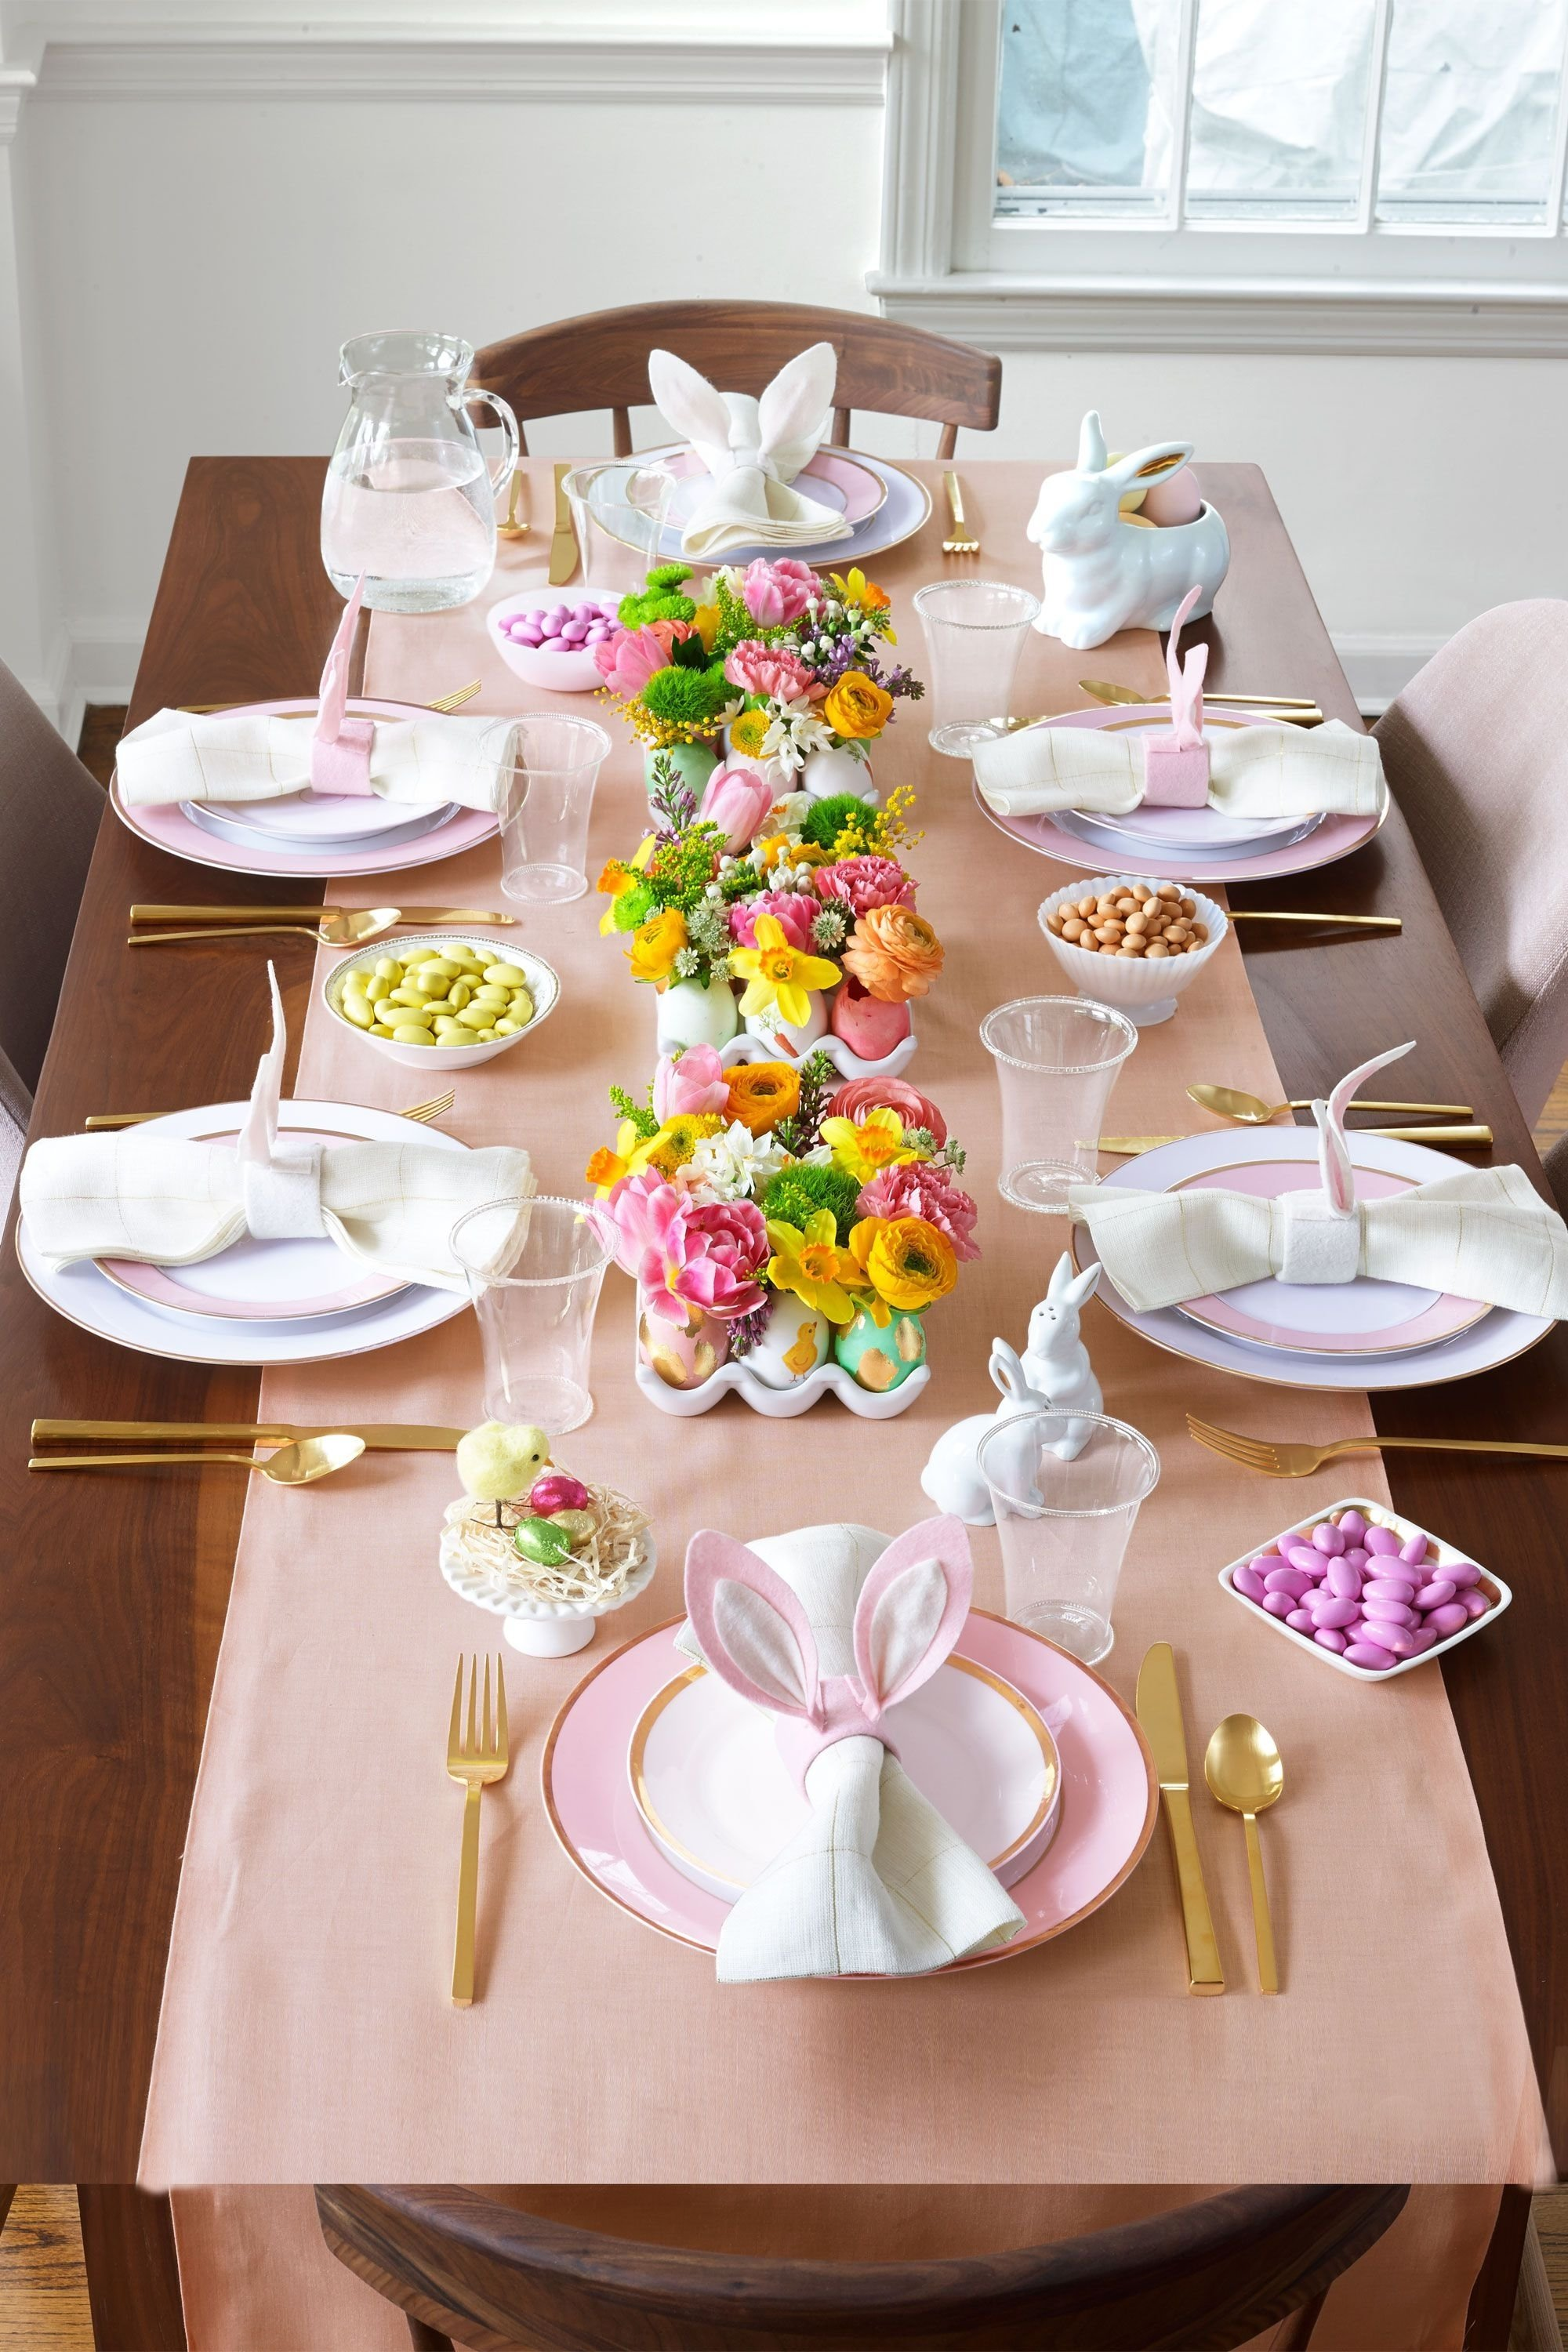 10 Best Easter Decorating Ideas Table Setting 24 easter table decorations table decor ideas for easter brunch